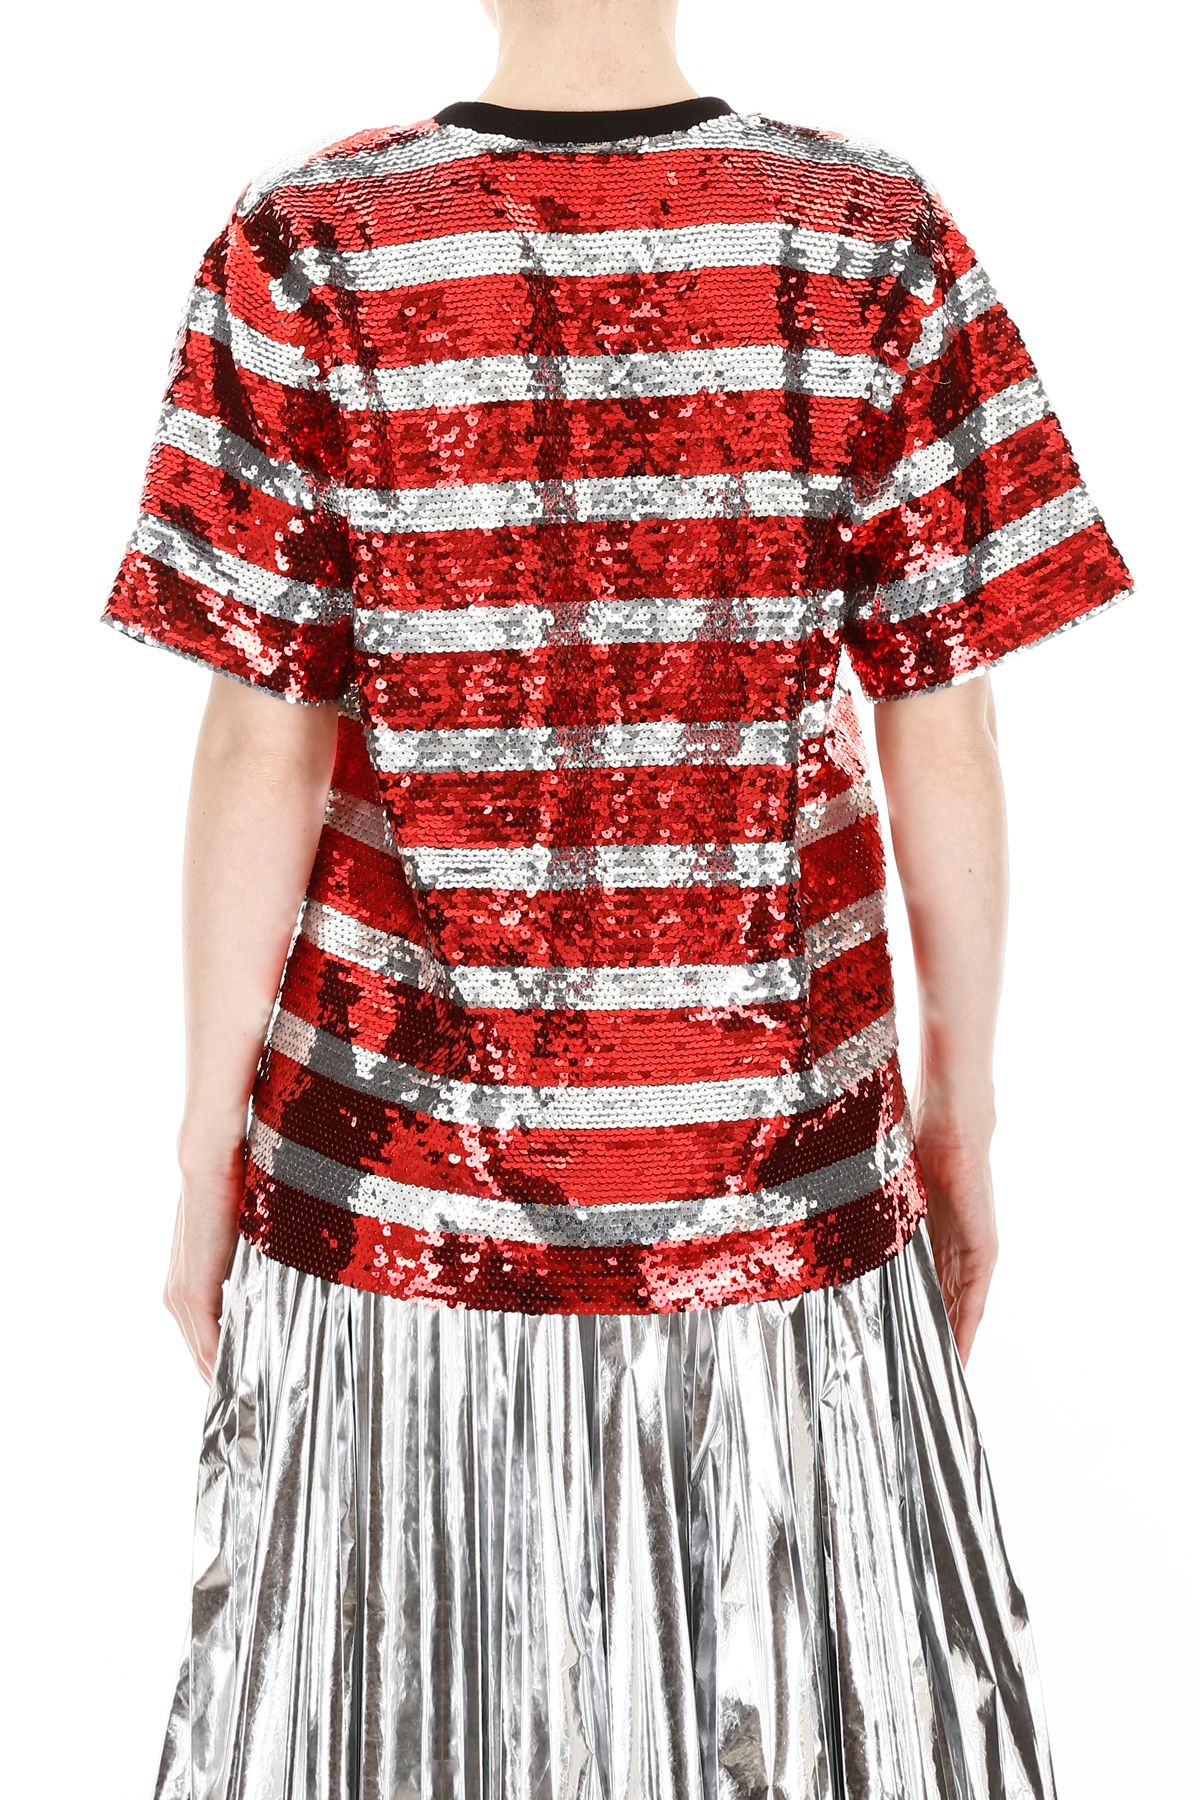 f919dfbf1b3be6 ... MSGM Sequins Striped Blouse With Logo - STRIPED RED WHITE (Red) ...